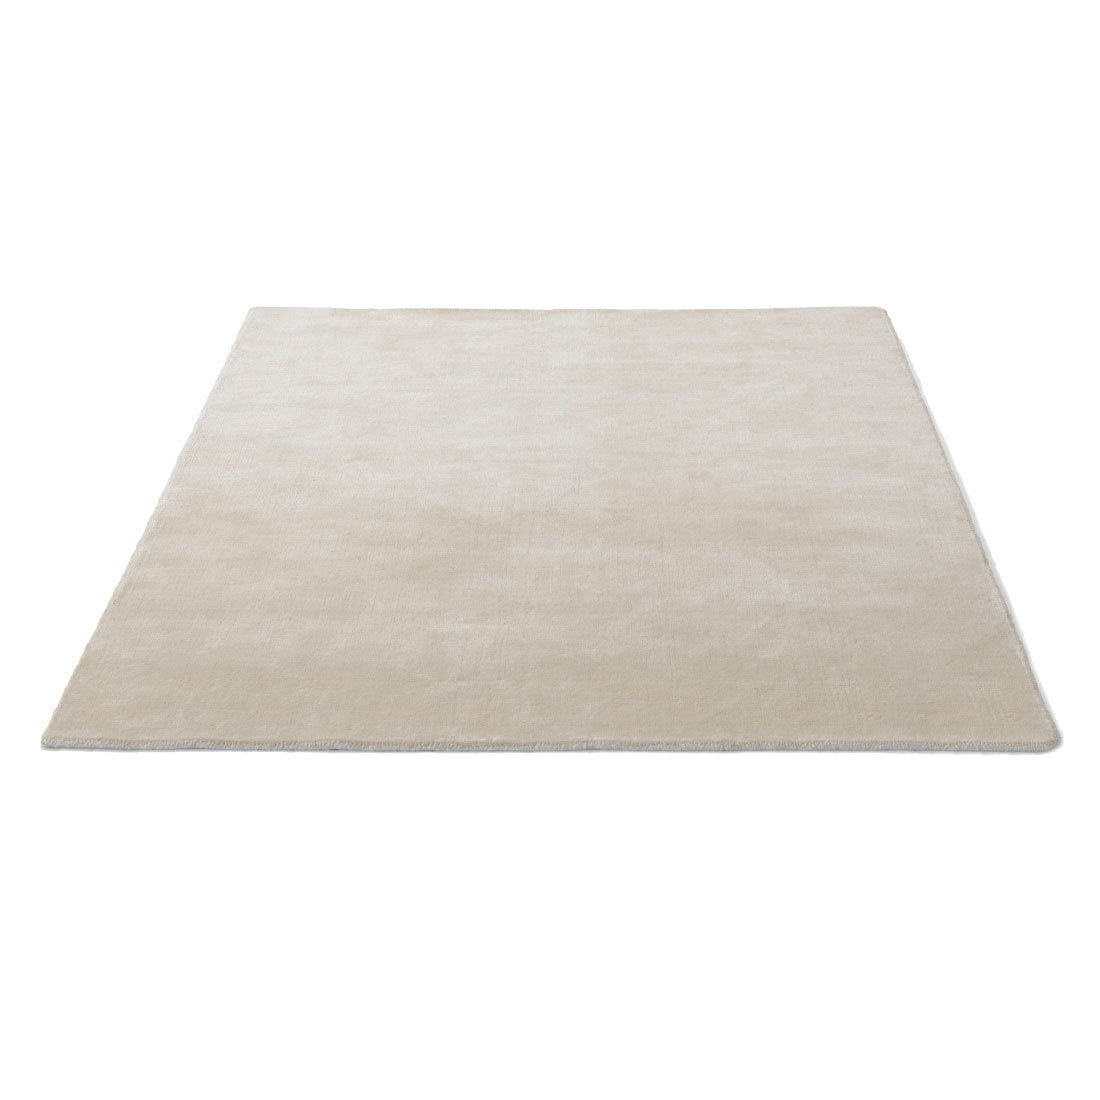 AndTradition The Moor Rug Vloerkleed AP5 Beige Dew